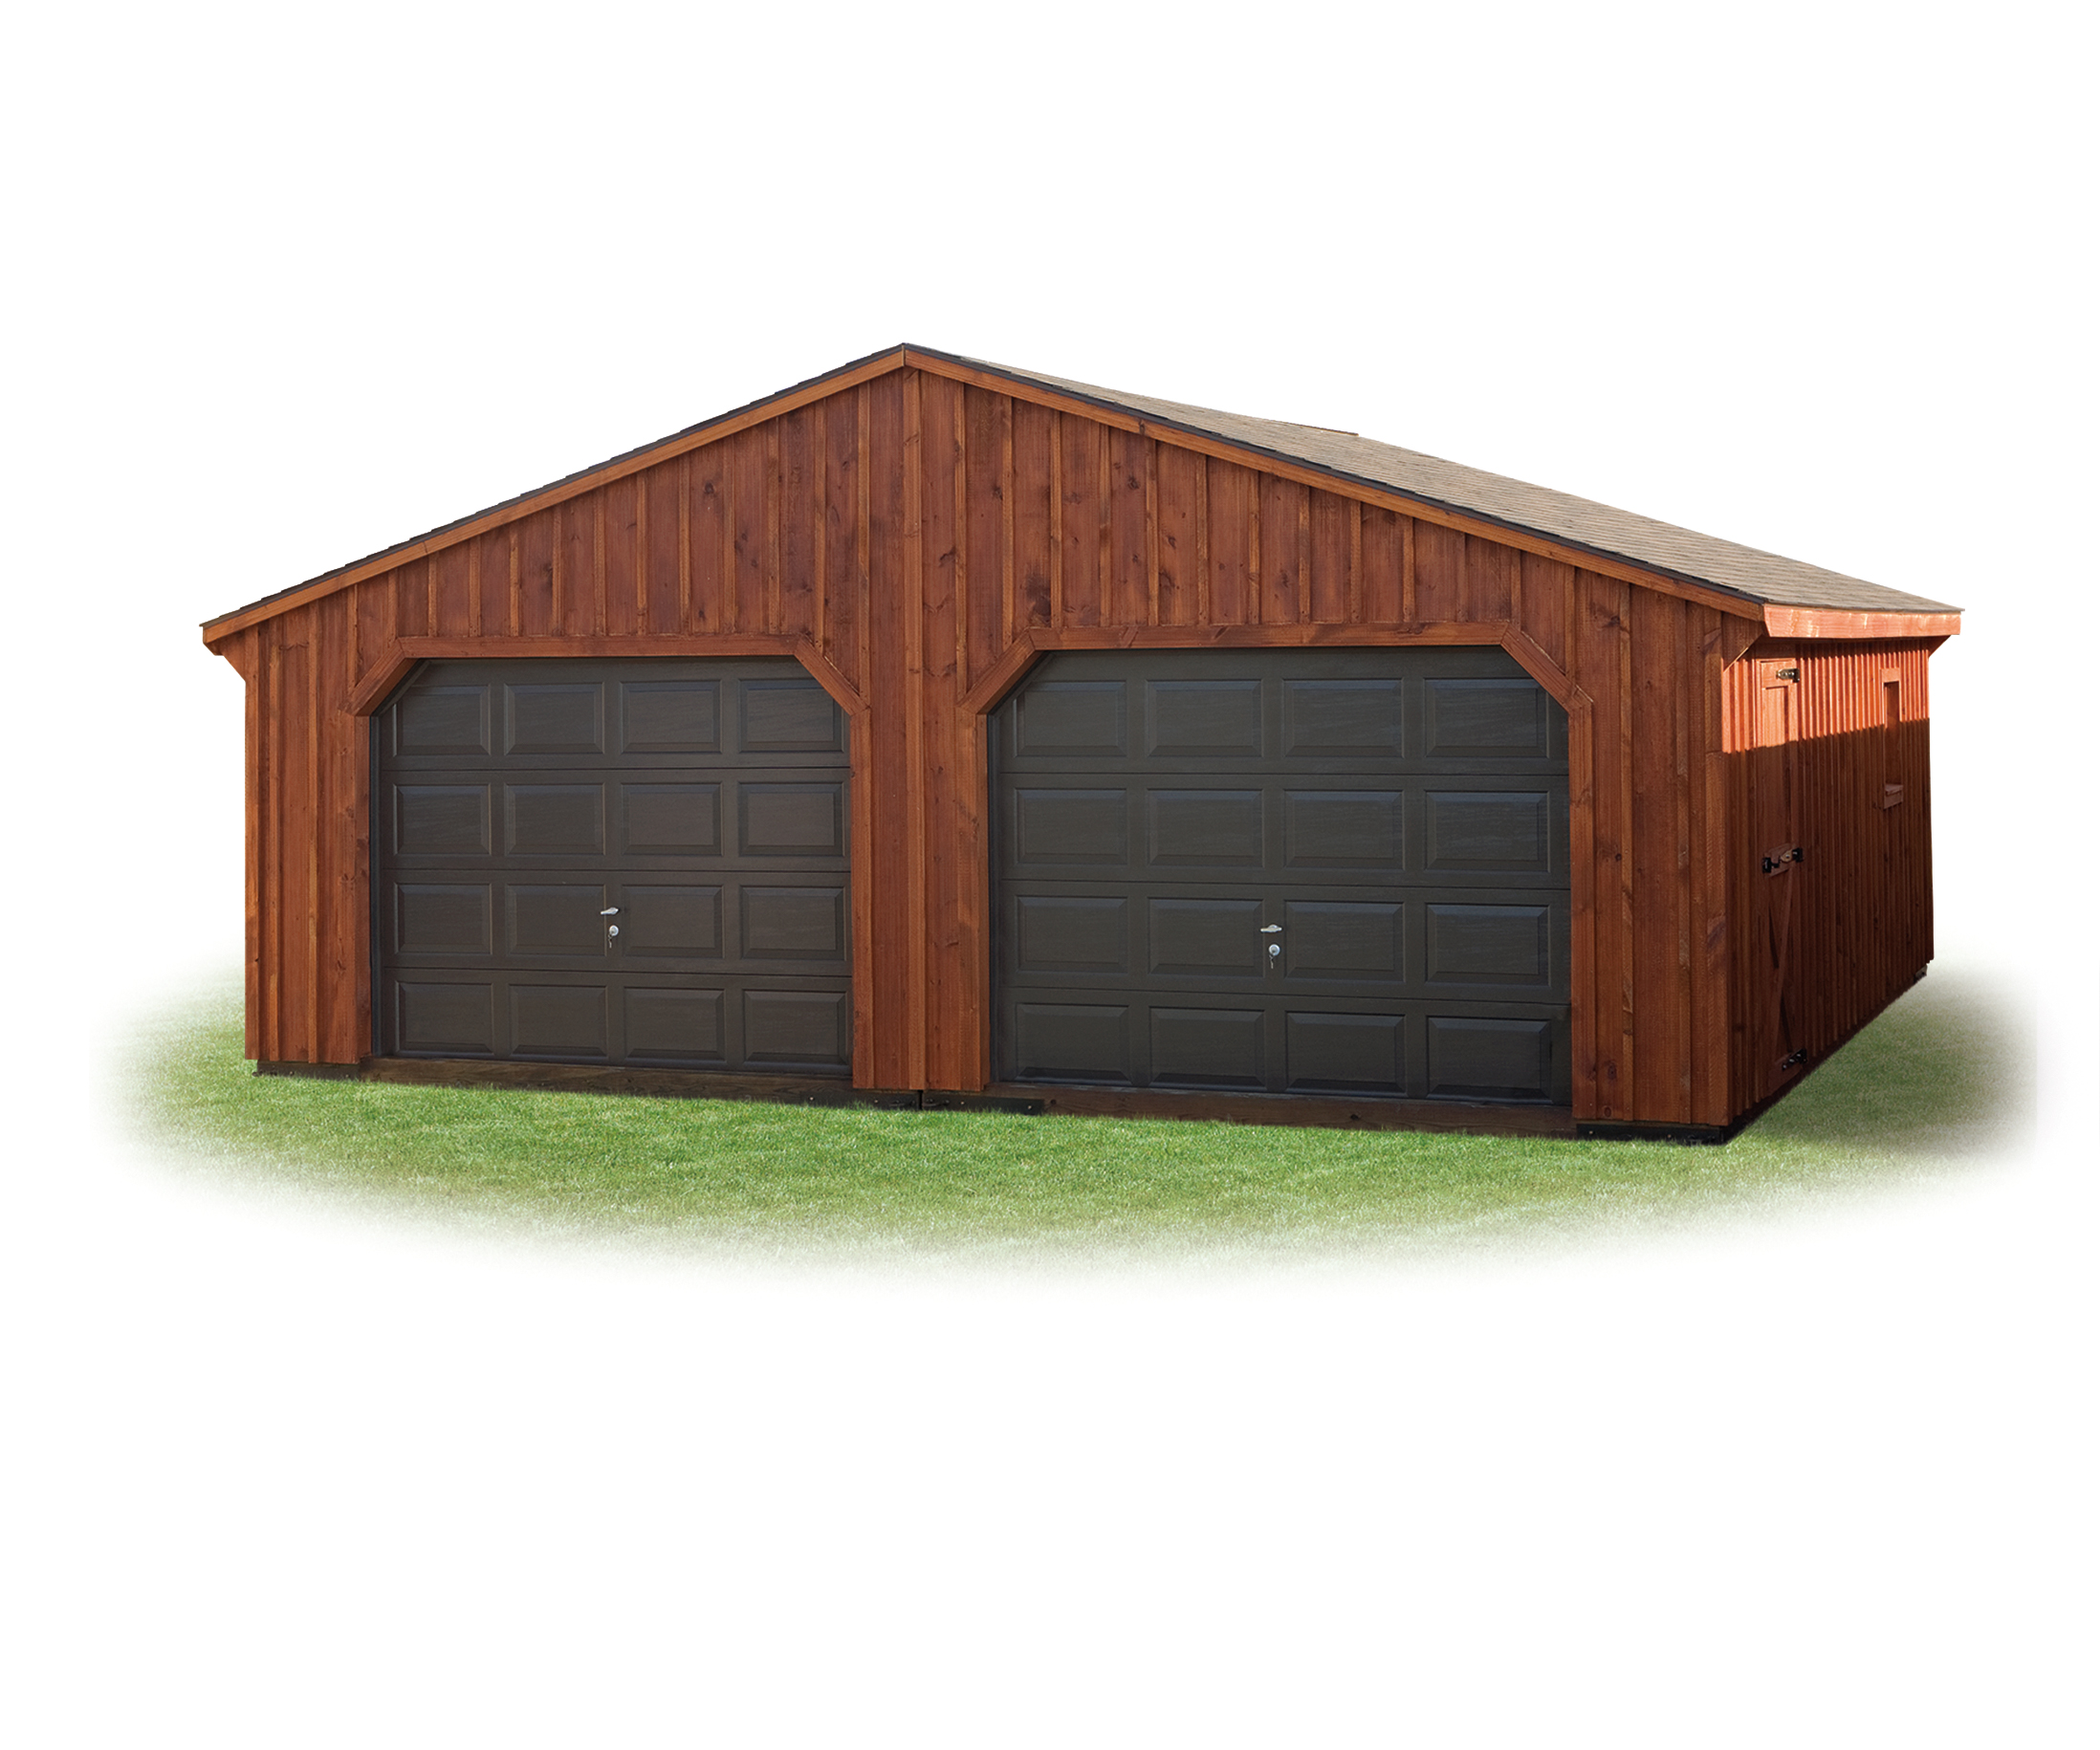 24 X 24 Double Wide Garage Amish Sheds From Bob Foote